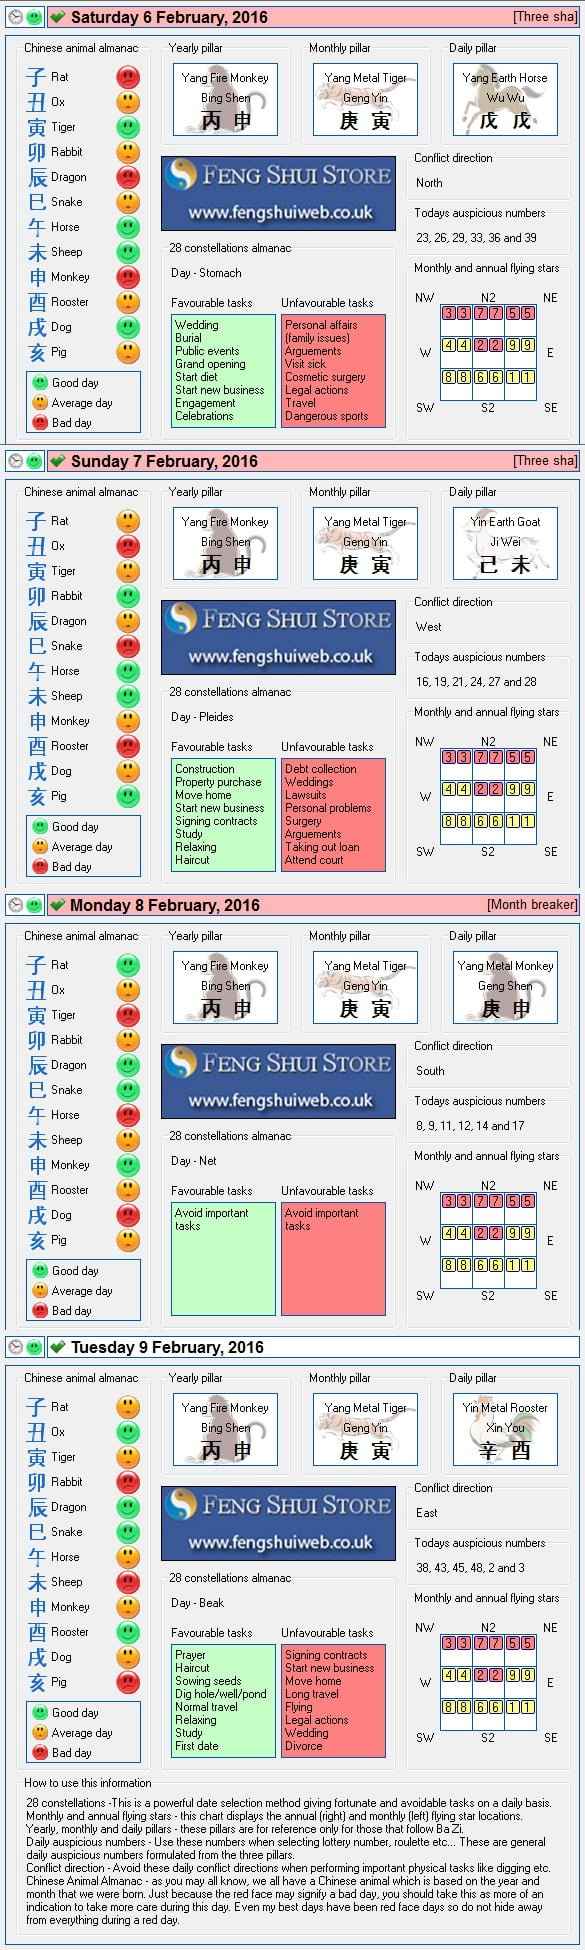 Tong Shu Almanac for Saturday 6th - Tuesday 9th February 2016